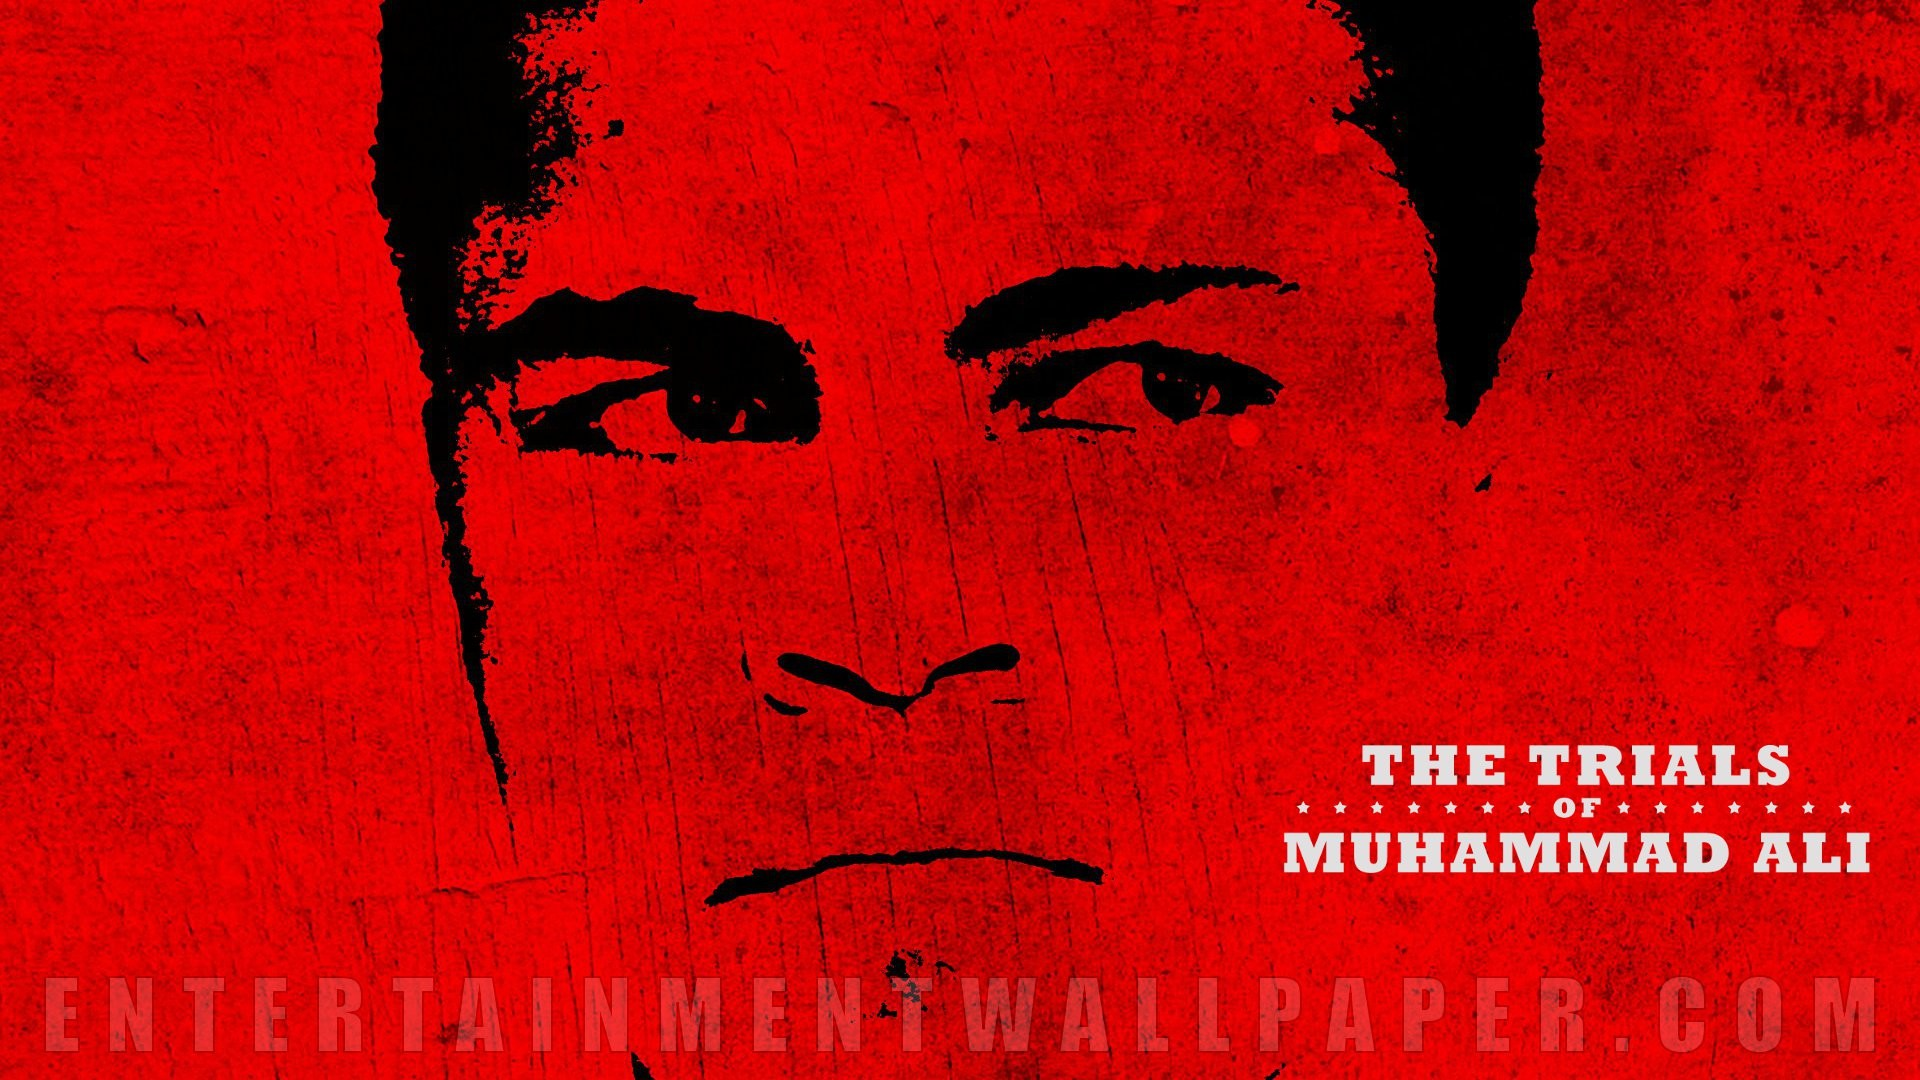 1920x1080 The Trials of Muhammad Ali Wallpaper - Original size, download now.